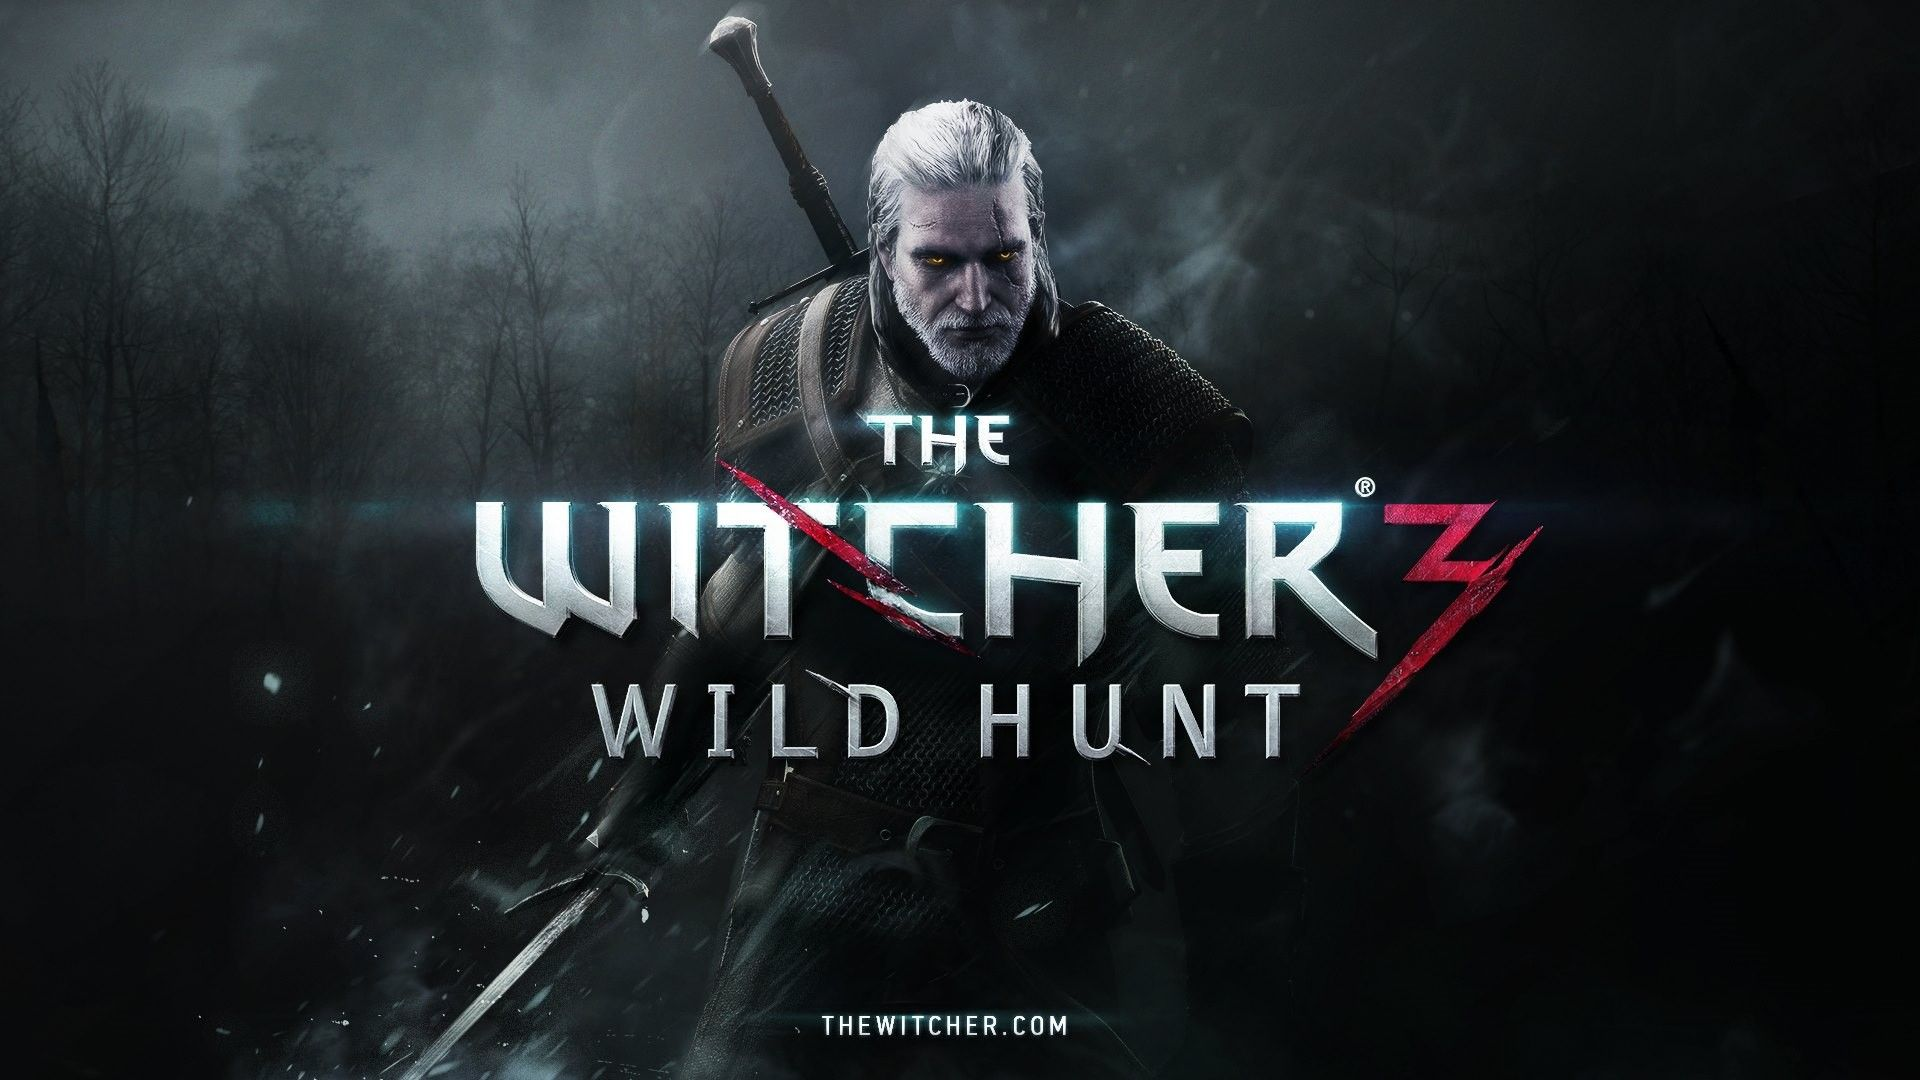 Witcher, Wallpaper Image